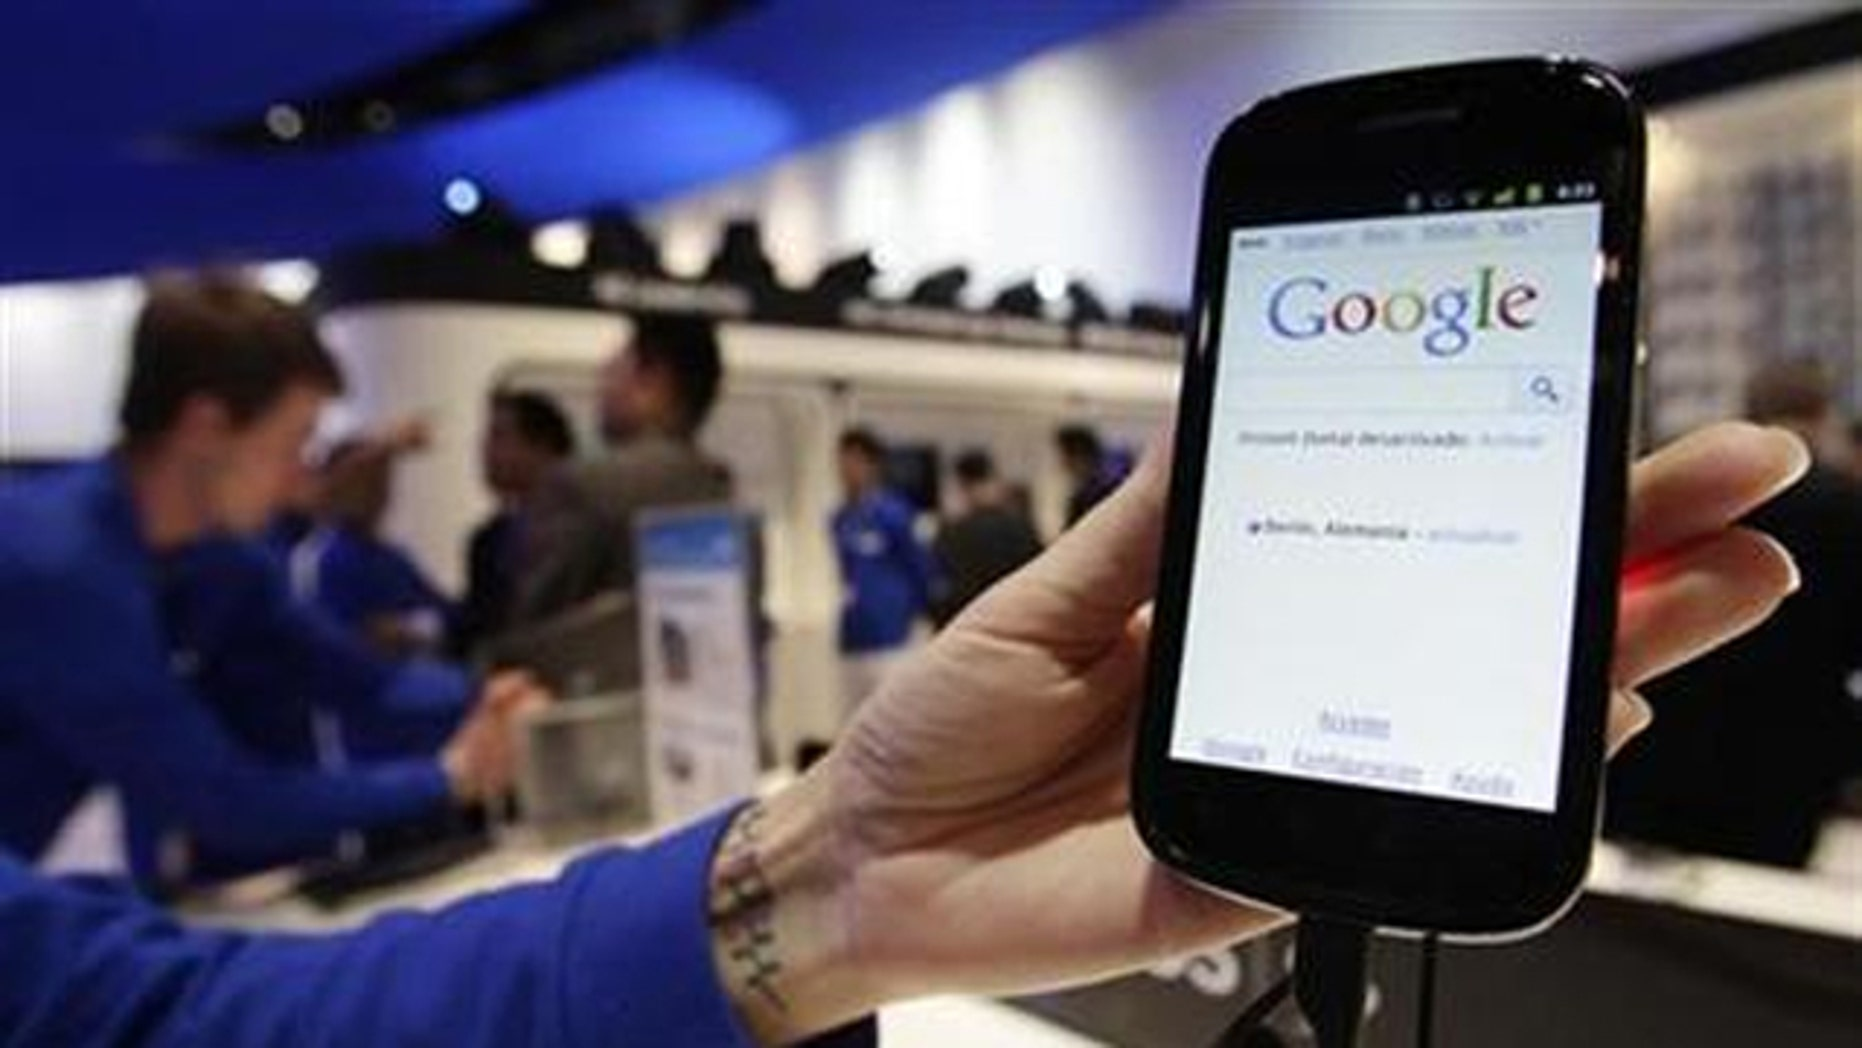 Samsung's Nexus S mobile phone, the first smartphone to use the Android 2.3 ''Gingerbread'' operating system, is displayed at the GSMA Mobile World Congress in Barcelona February 15, 2011.